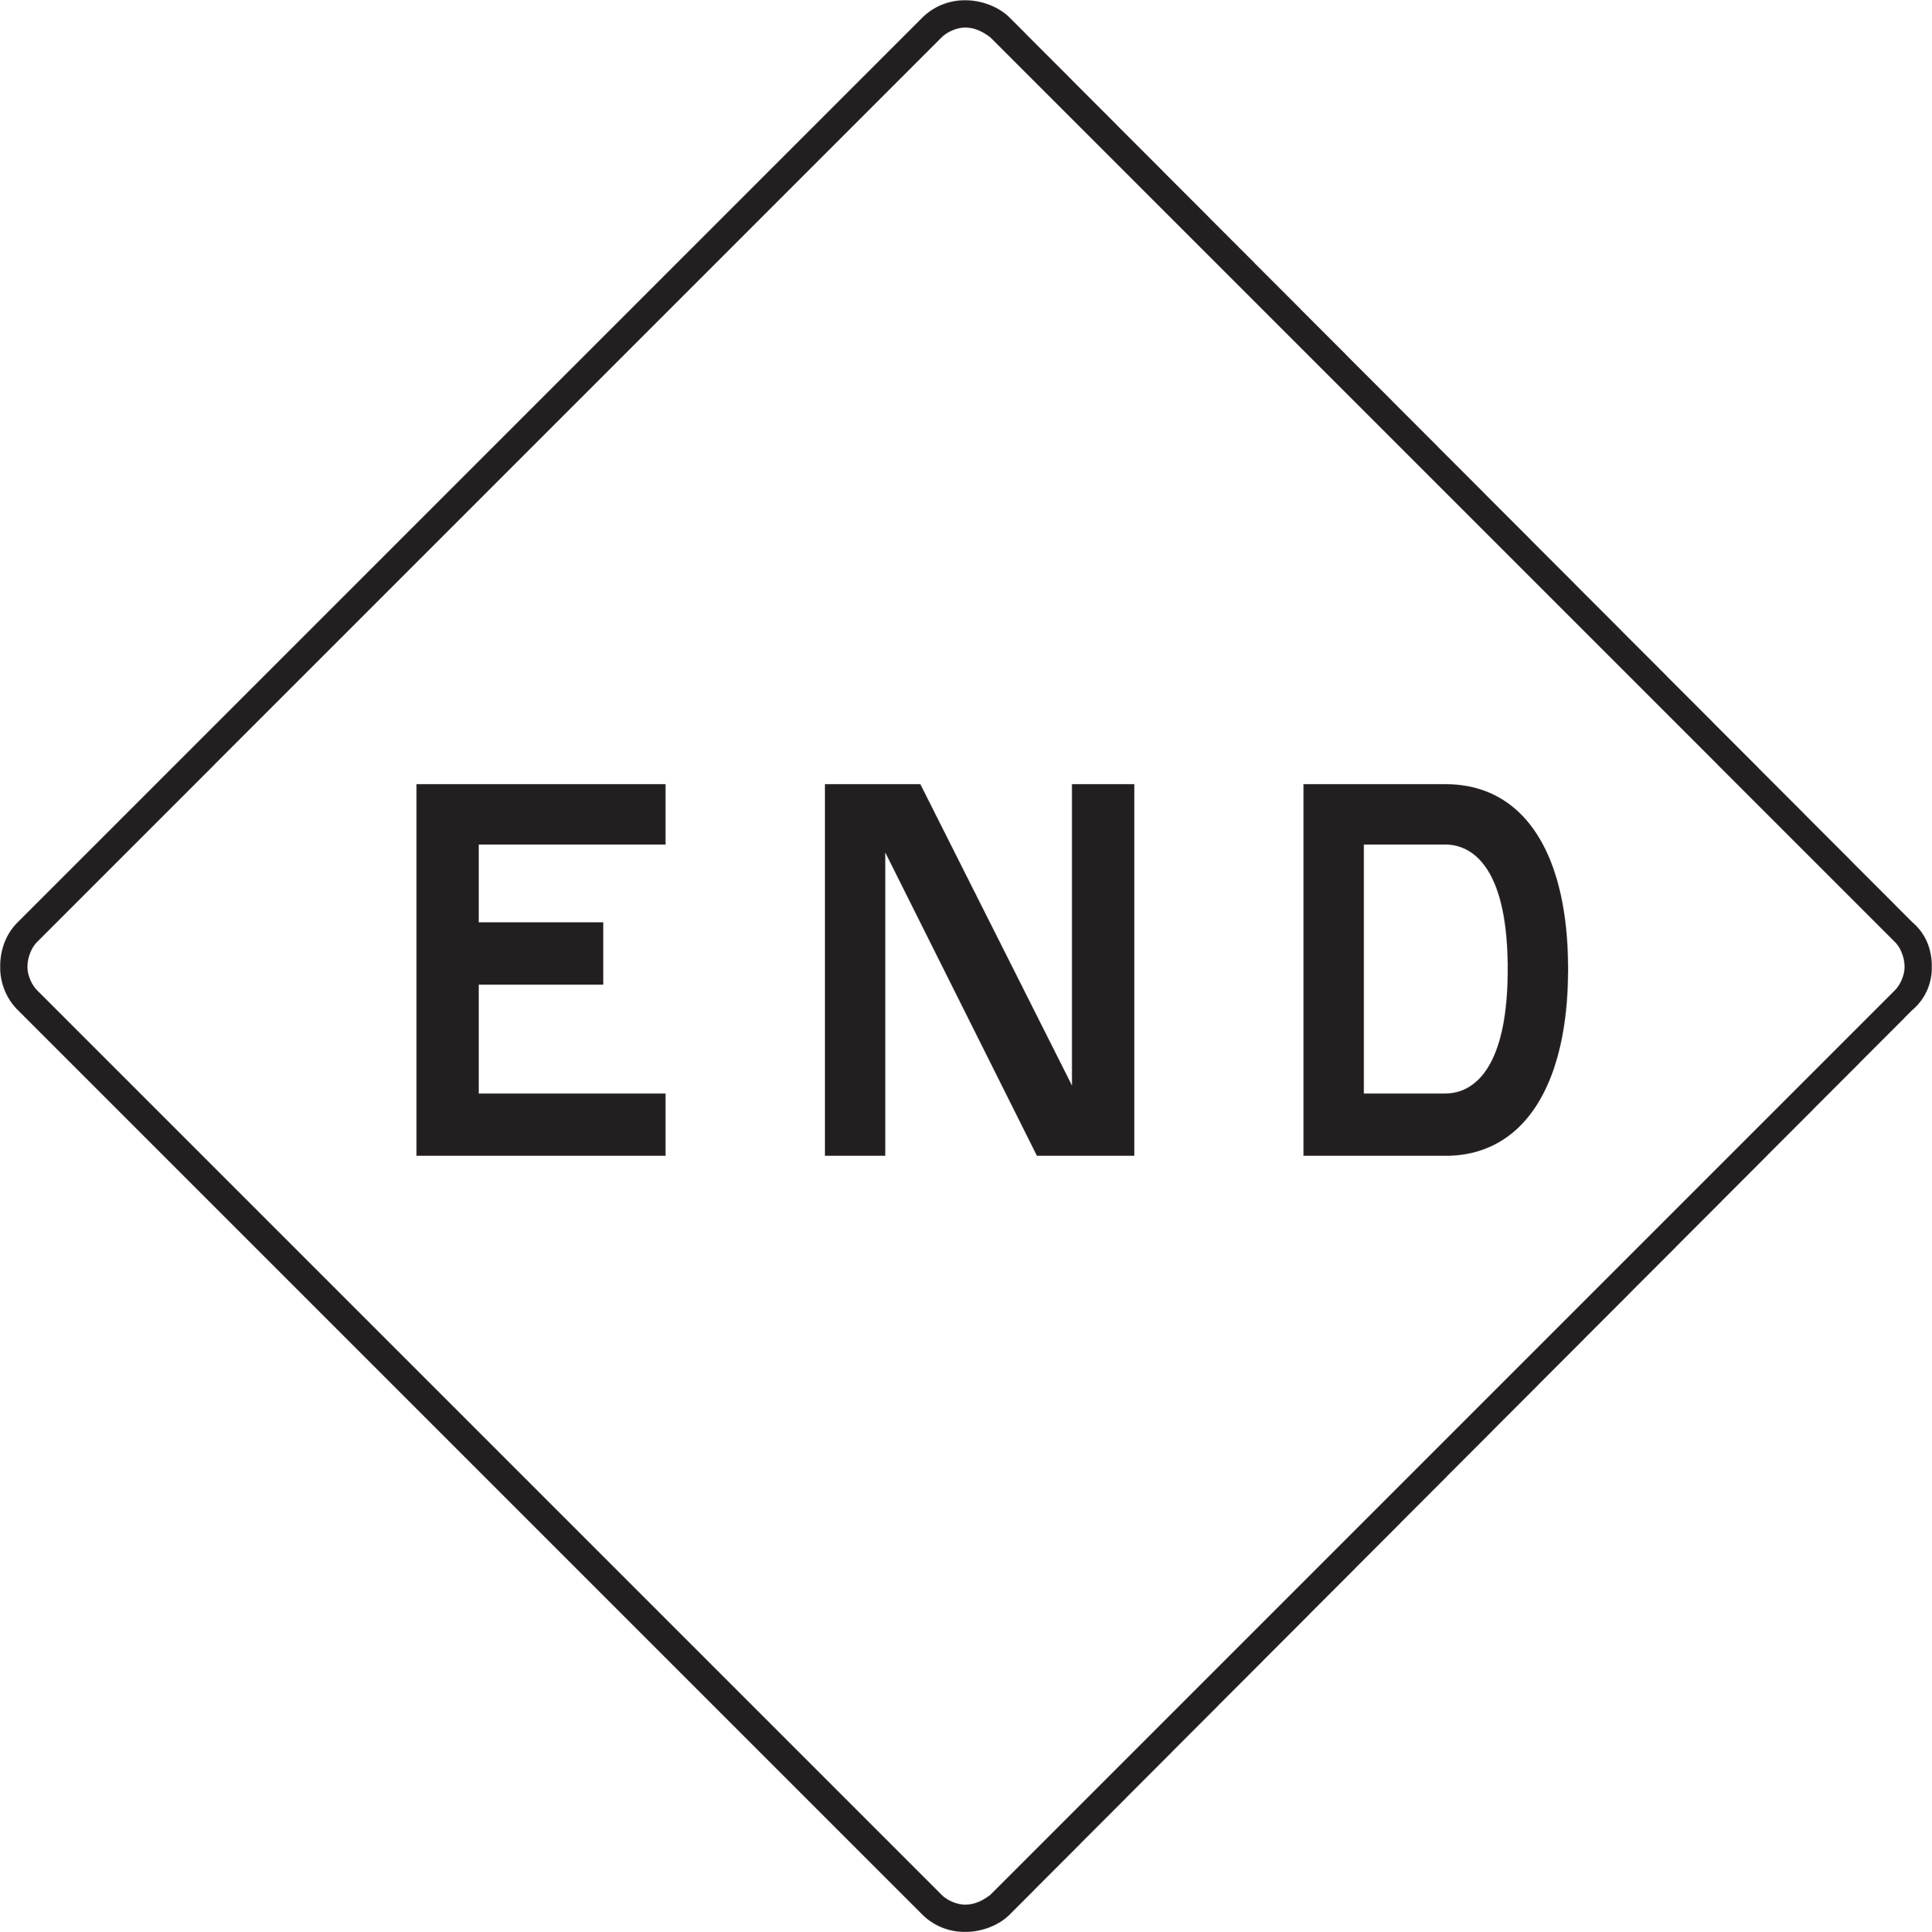 End clipart black and white Clipart Clipart Free Clipart Ending